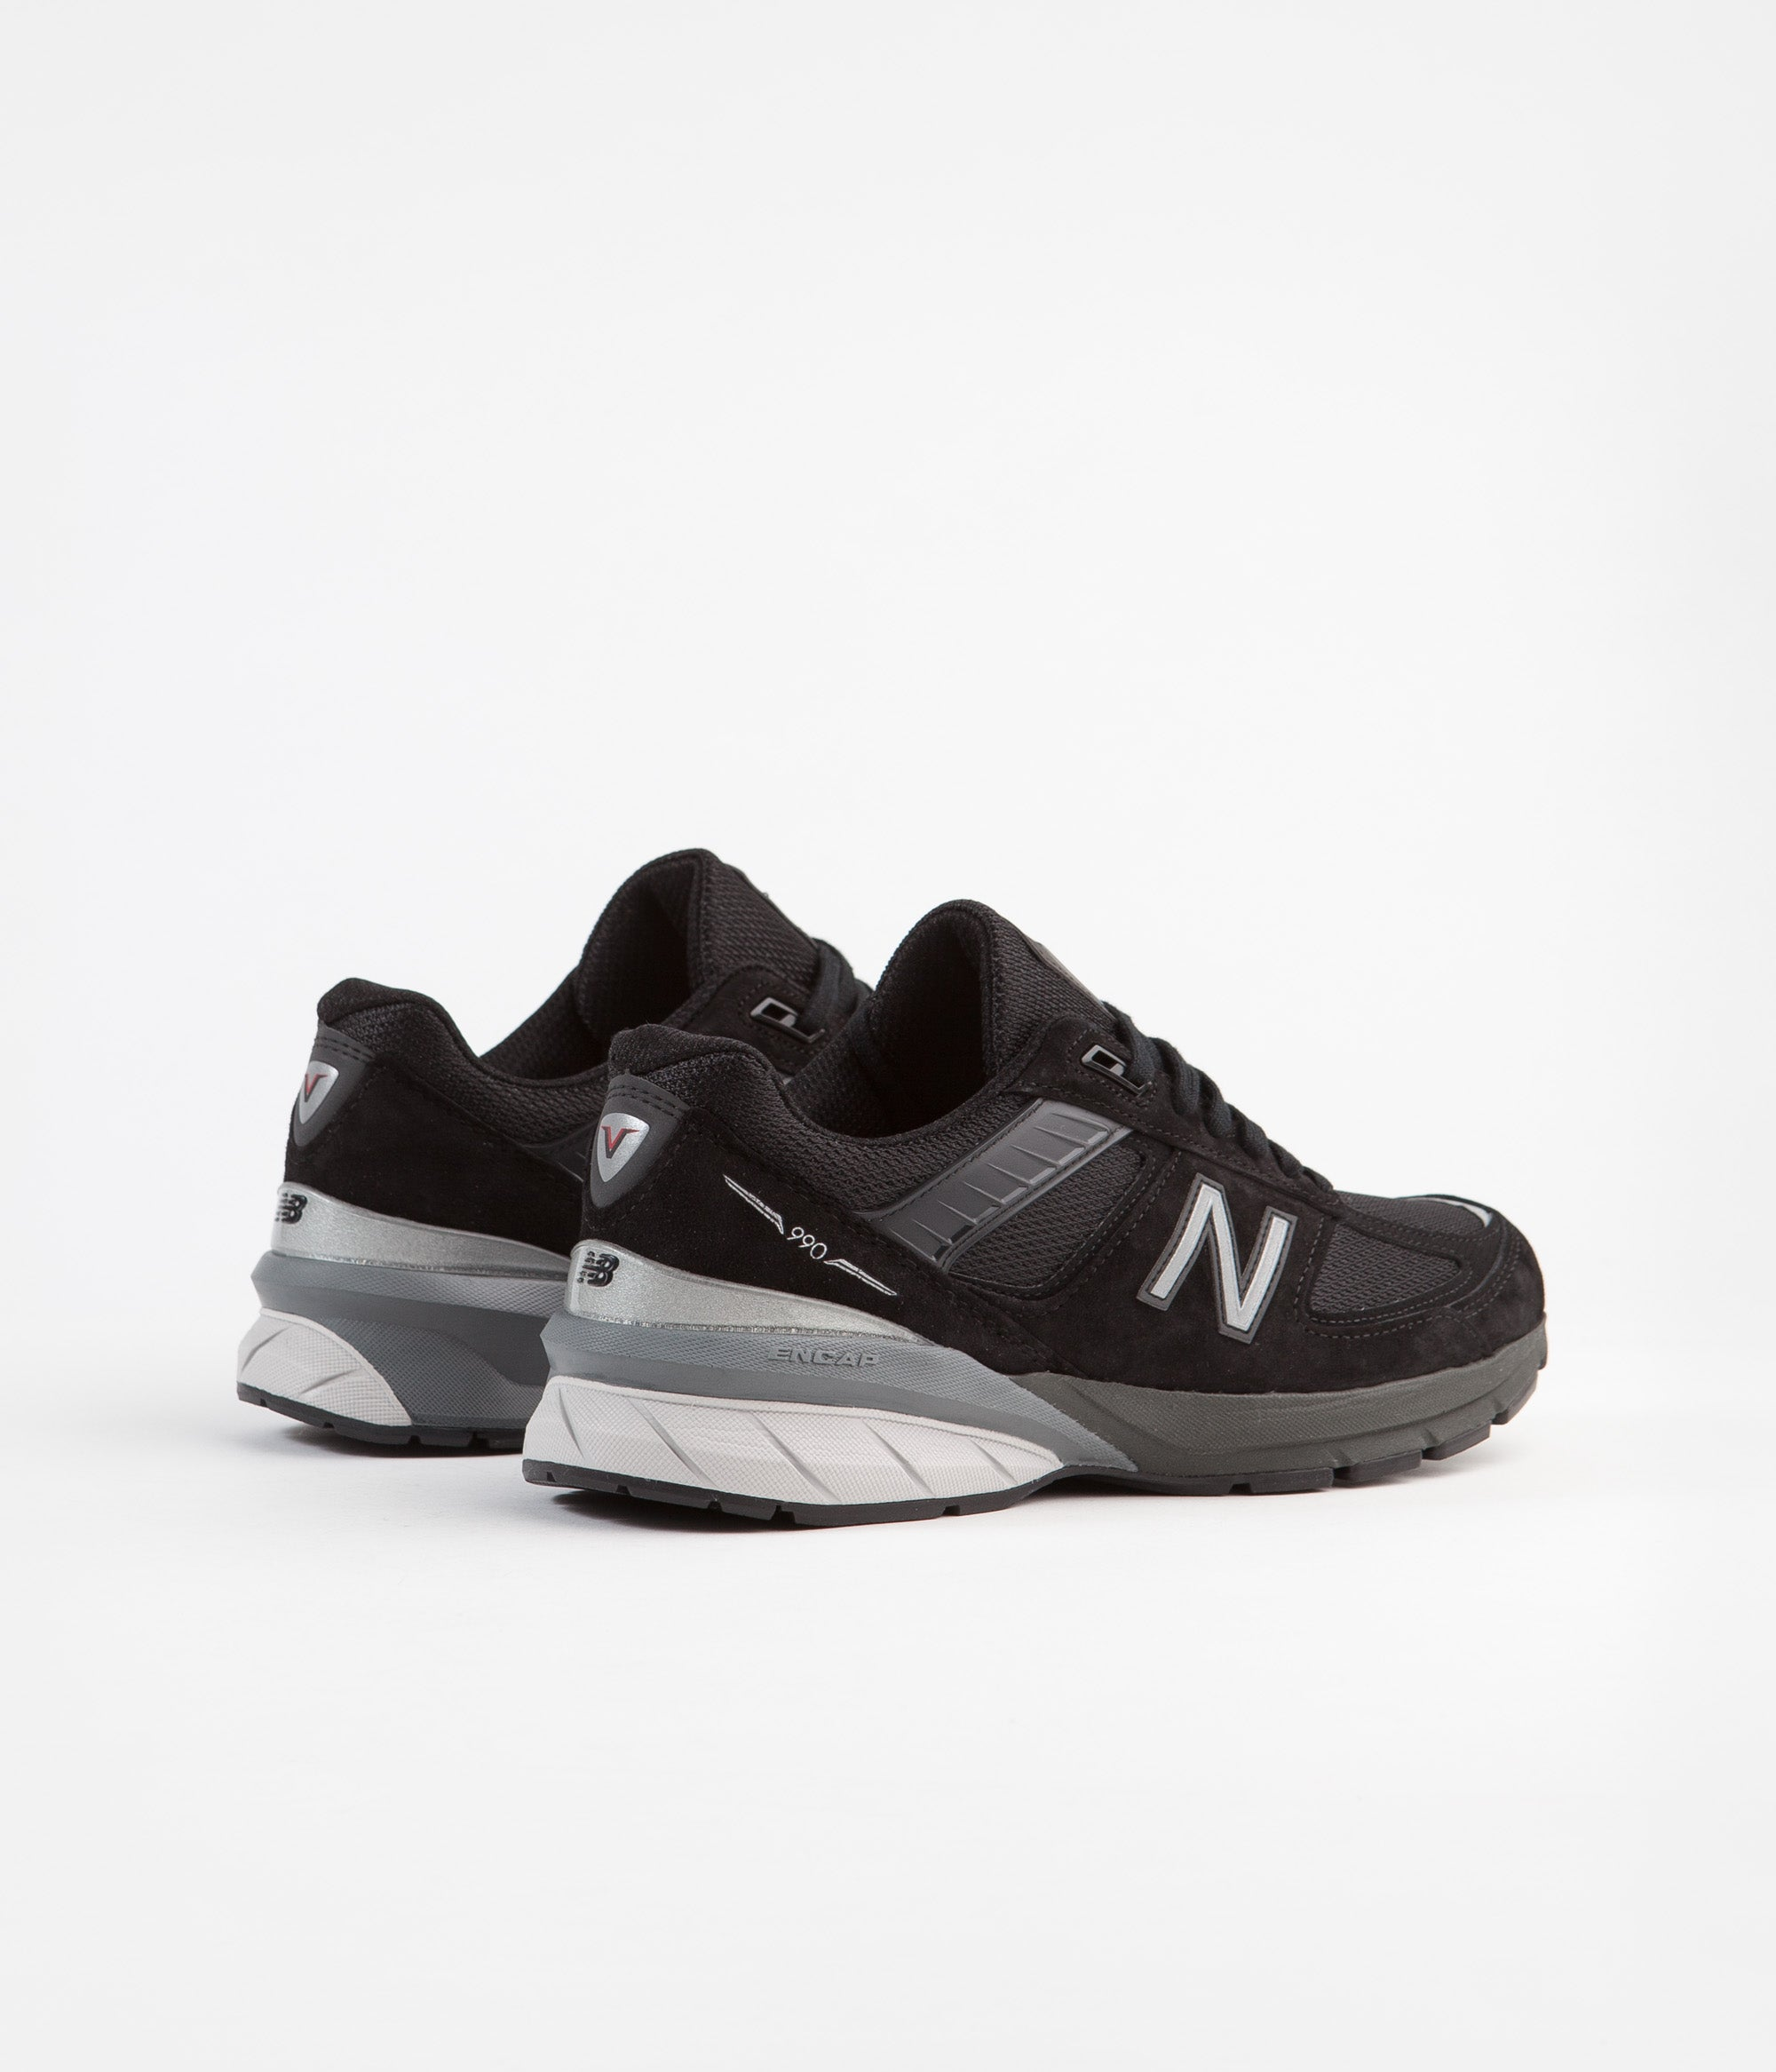 info for 4b690 dae70 New Balance 990 v5 Made In US Shoes - Black / Silver ...